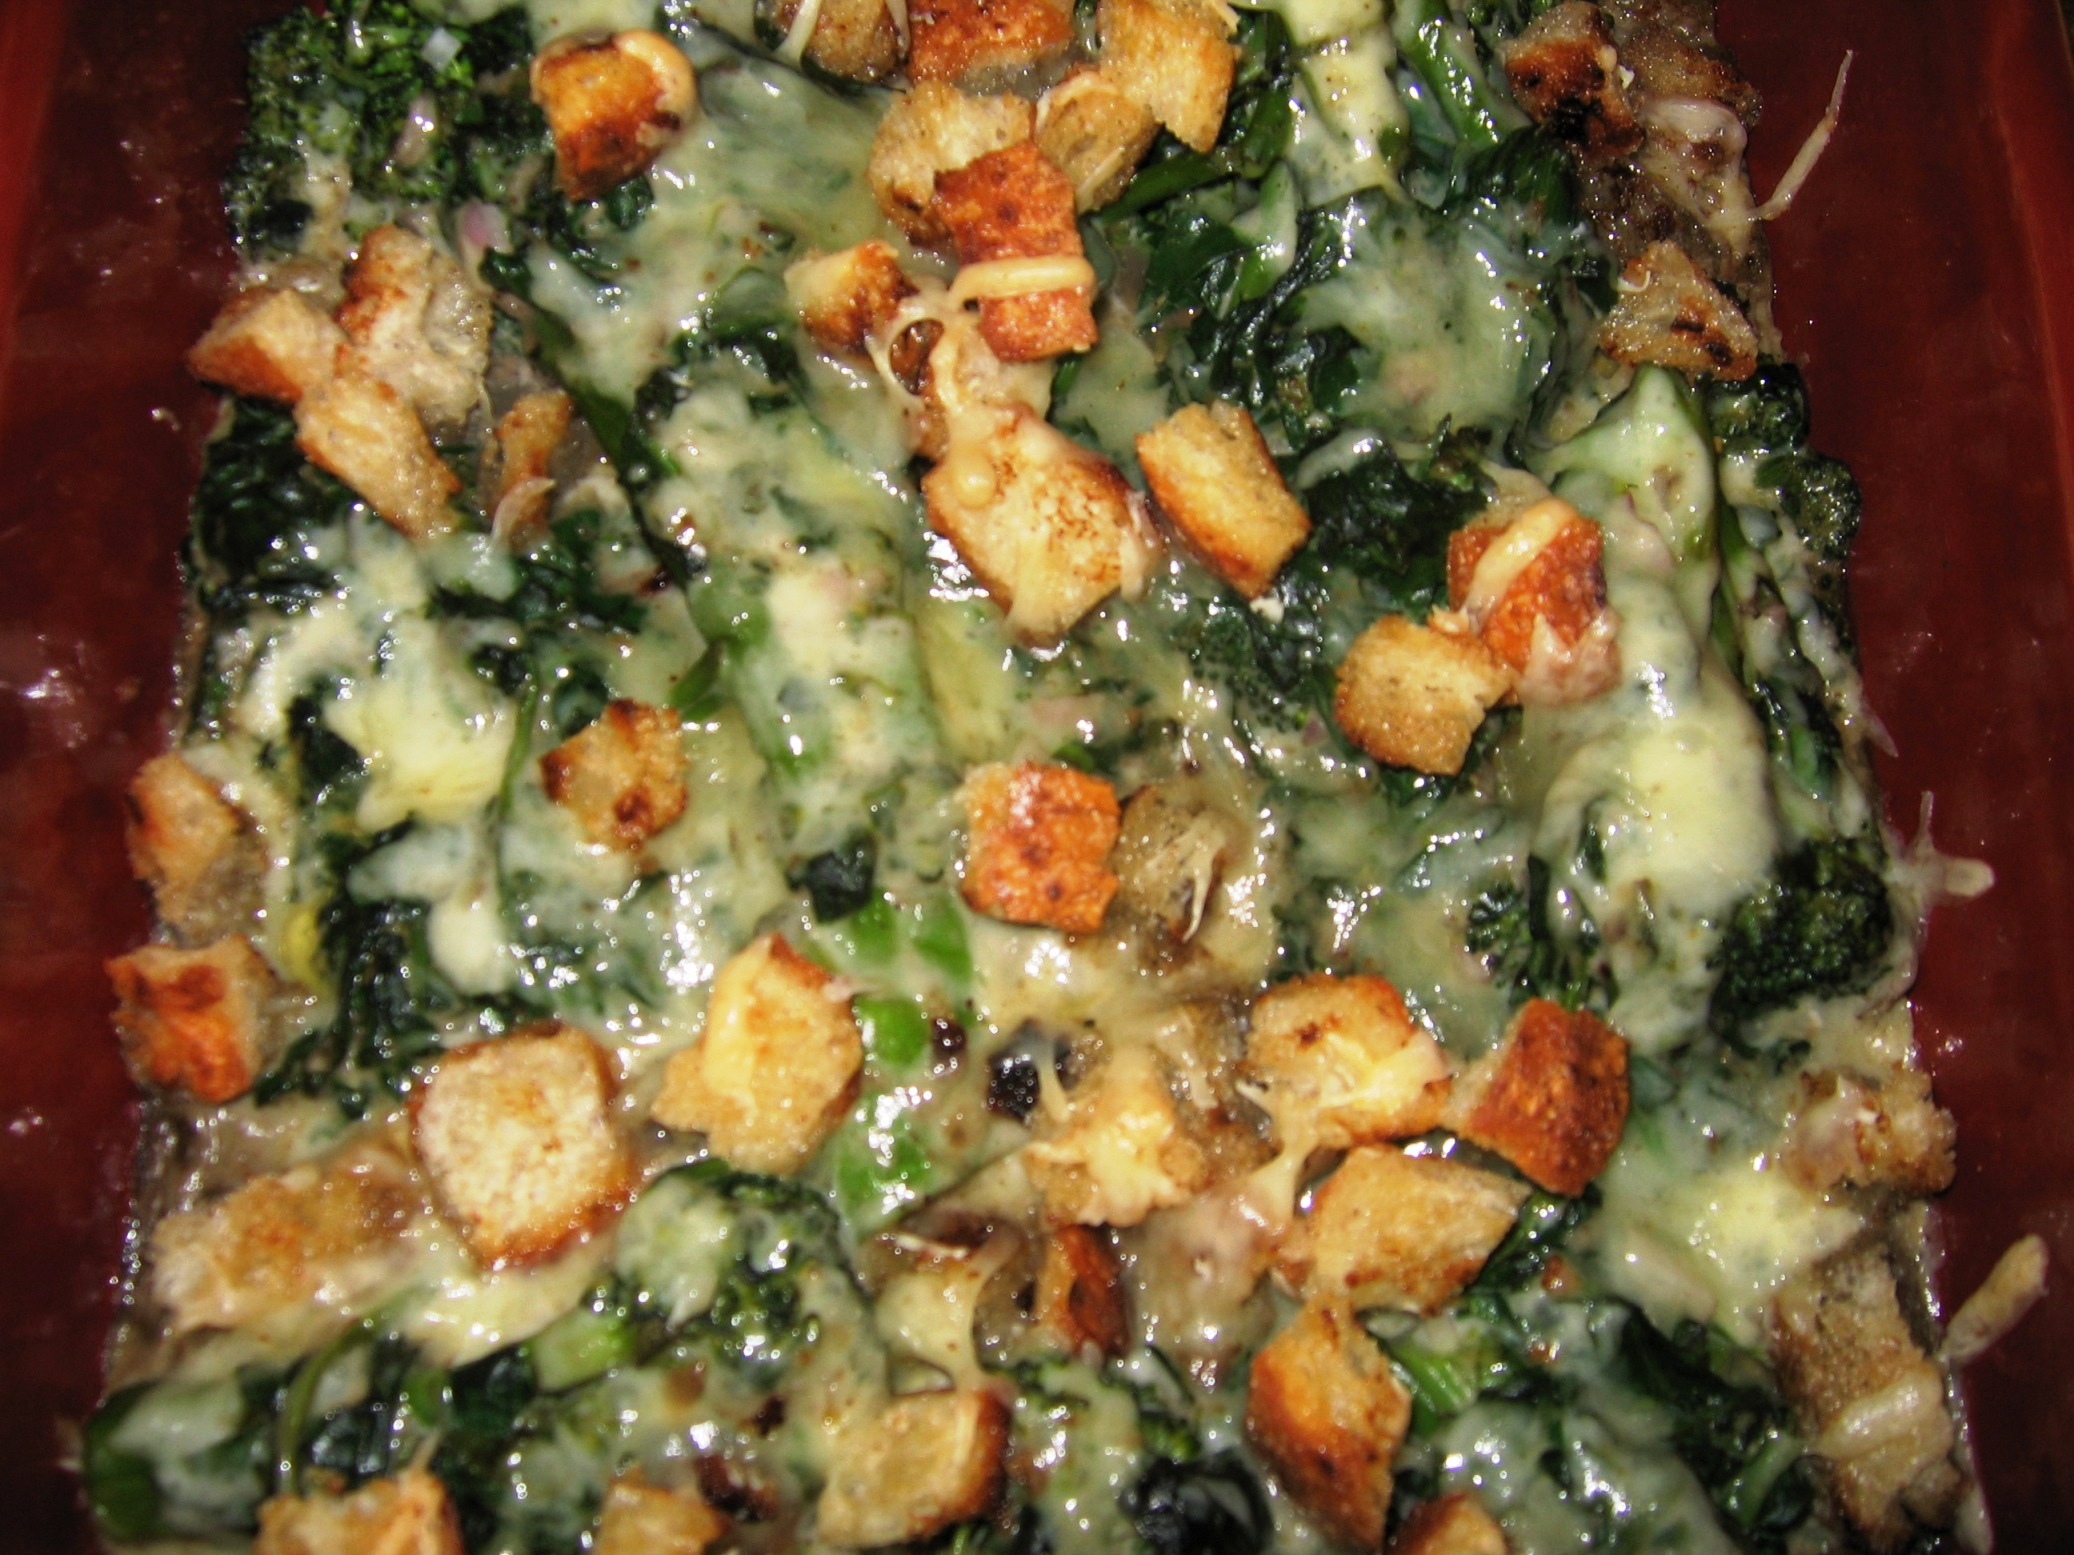 Broccoli-Spinach Casserole picture